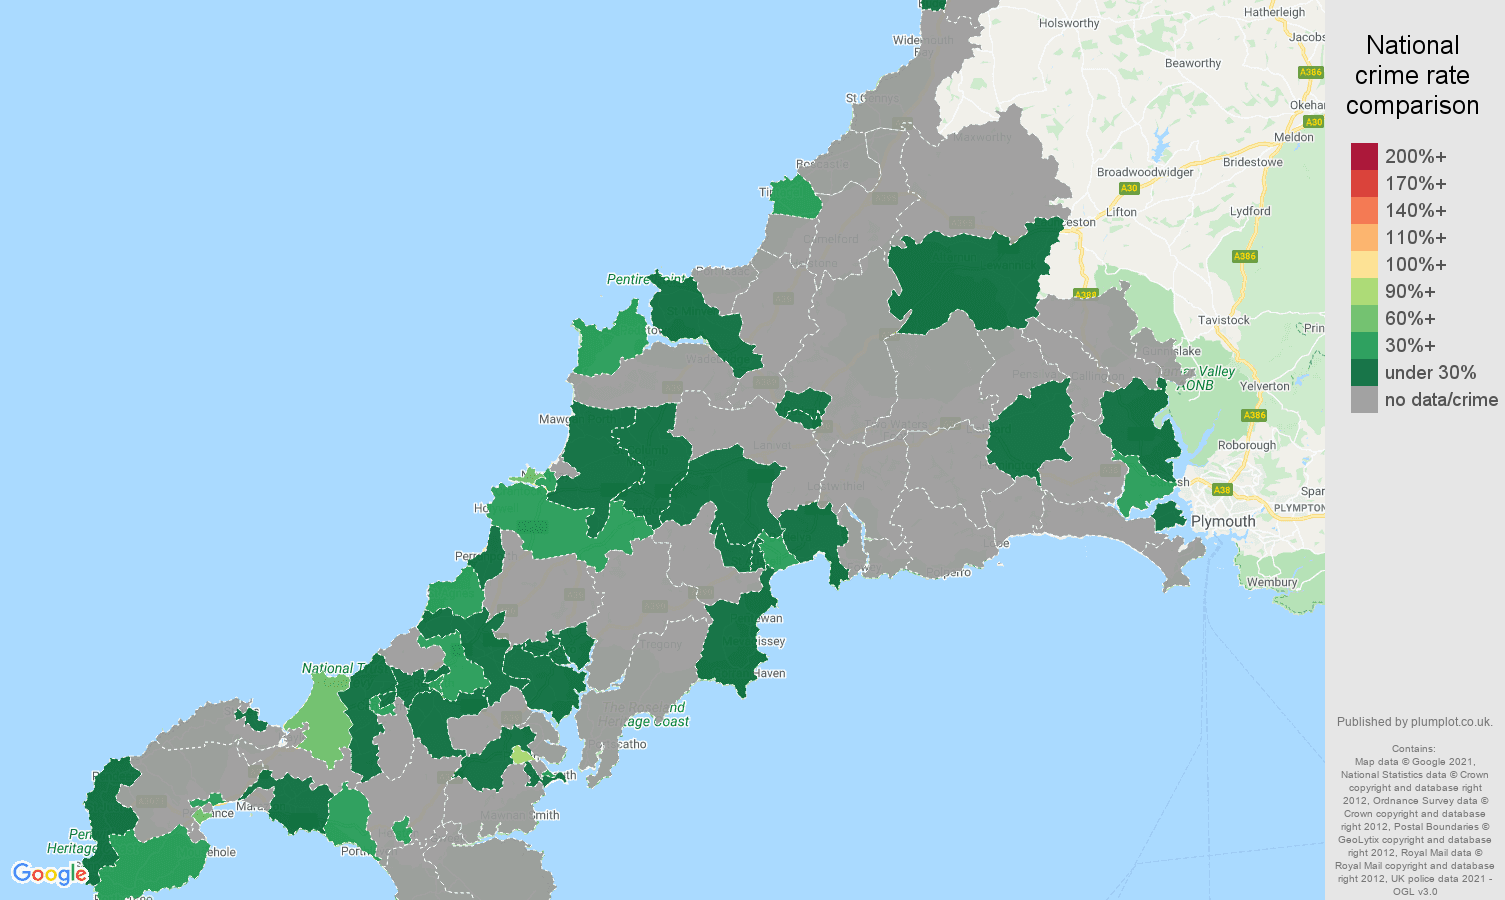 Cornwall bicycle theft crime rate comparison map